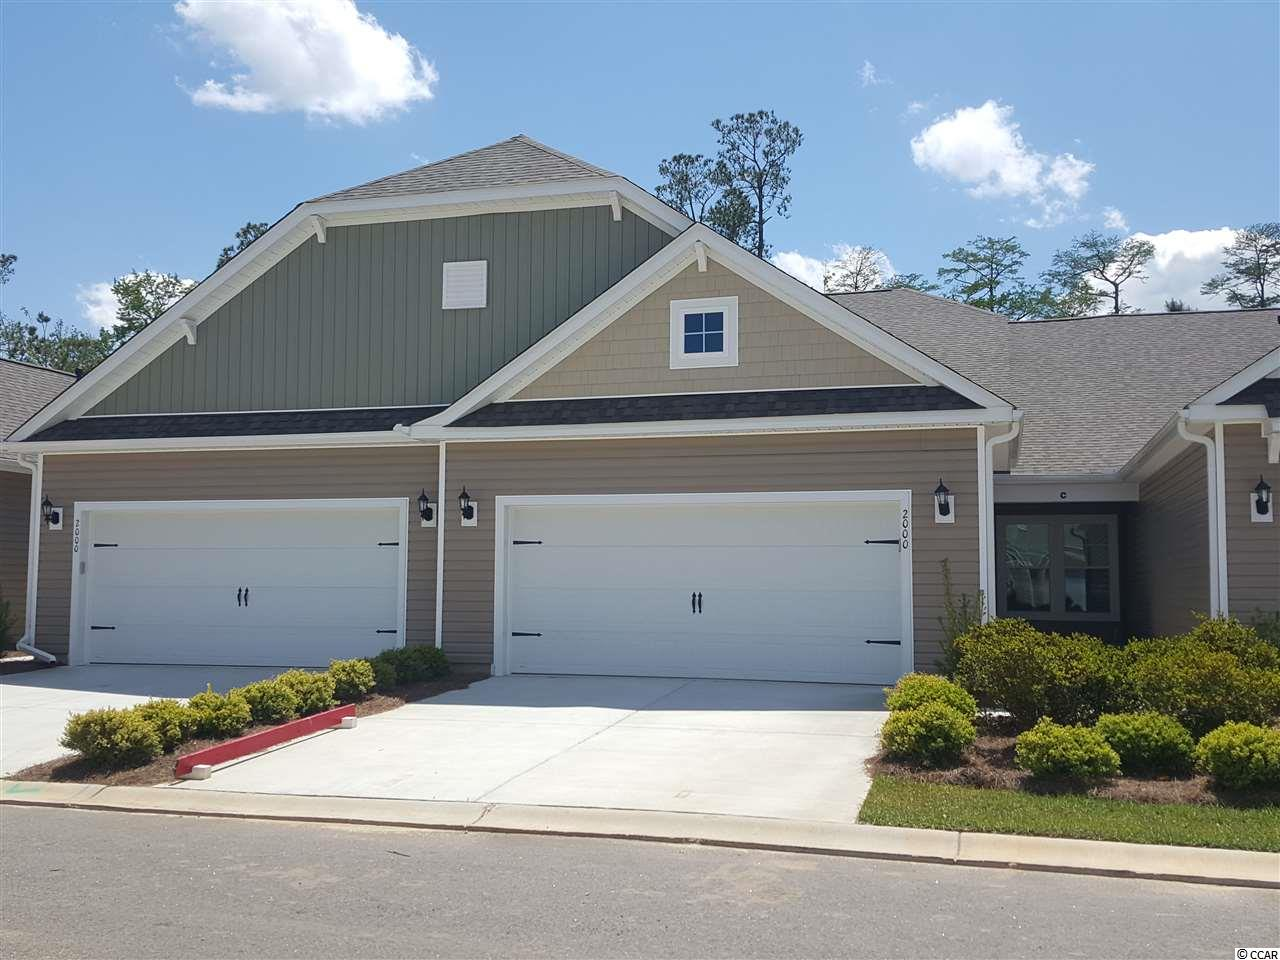 Move In Ready. Spacious Garden Homes in Palm Lakes consist of 70 villas; 4 single level living per building. This Edisto is an interior villa 3BR/2BA, 2 car garage and attic storage. Other features include granite, SS appliances, EVP flooring in main living areas, carpet in bedroom and tile in bathrooms. Tiled shower in owners bath, tray ceilings, natural gas fireplace, window blinds and screened porch to enjoy the private back yard tree line view. If you are looking for a maintenance free lifestyle and not having to hassle with exterior upkeep and lawn care then stop by Palm Lakes Garden Homes for a view. Amenity Area with Pool, Club House, Fitness Room and Playground. A quick 10 minute drive to the beach, shopping, restaurants and medical centers and only 5 minutes to the North Myrtle Beach Sports Complex.